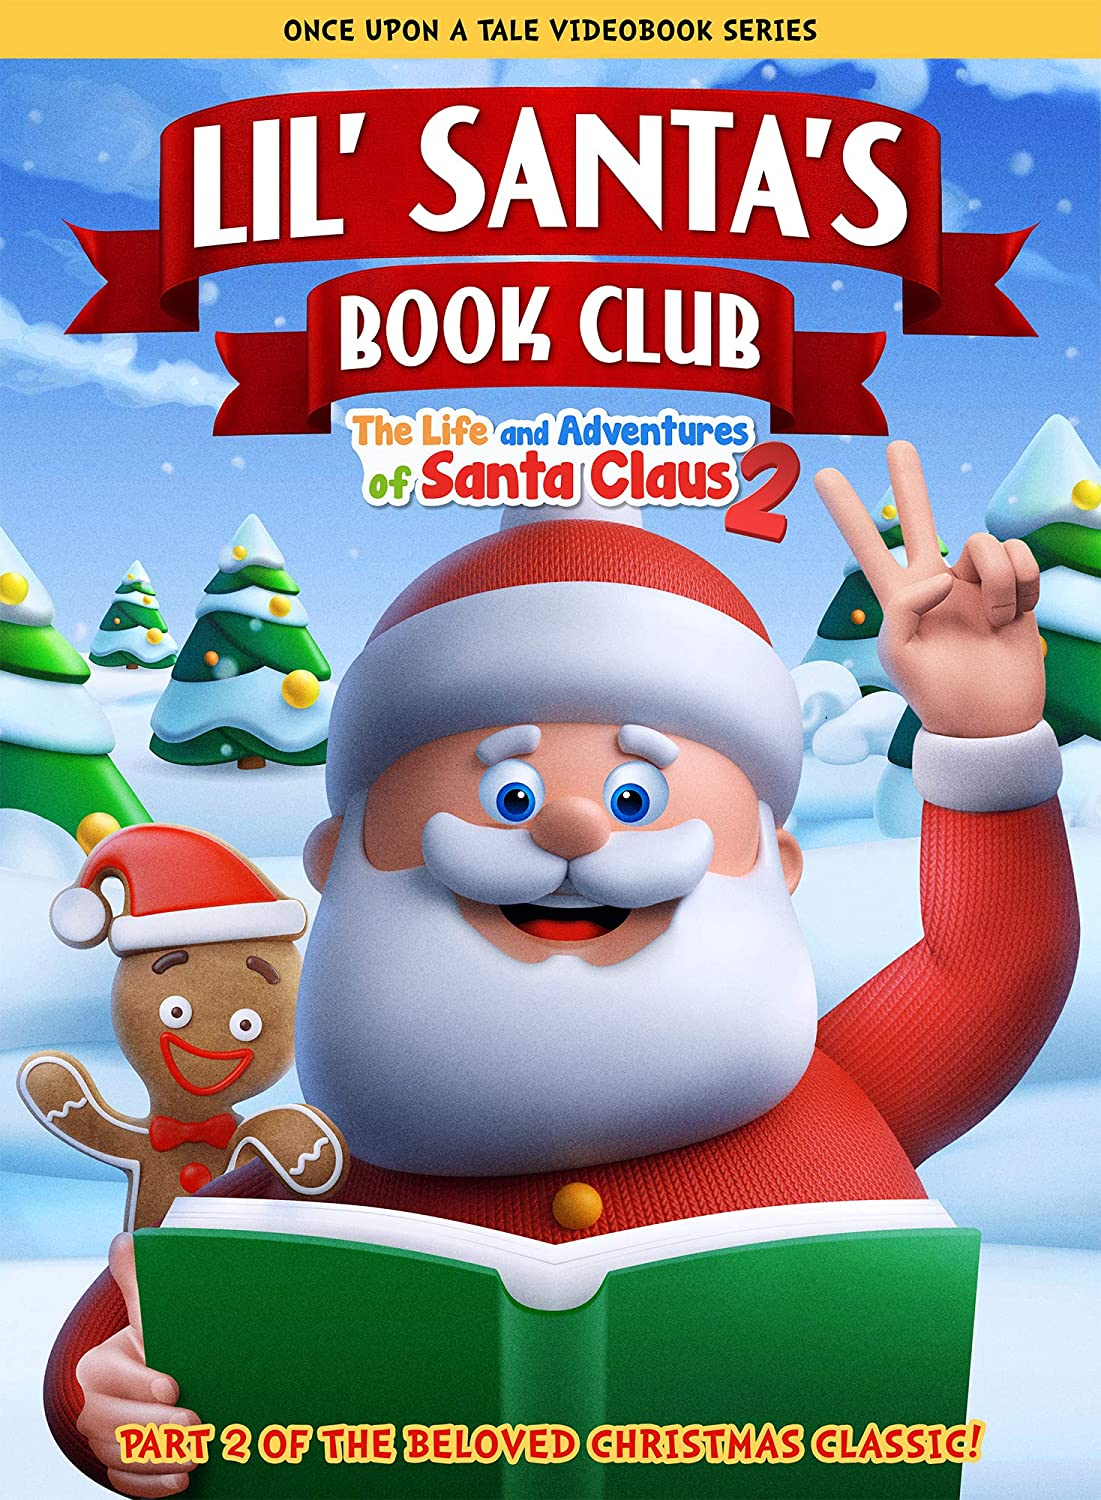 Lil' Santa's Book Club: The Life and Adventures of Santa Claus - Part 2